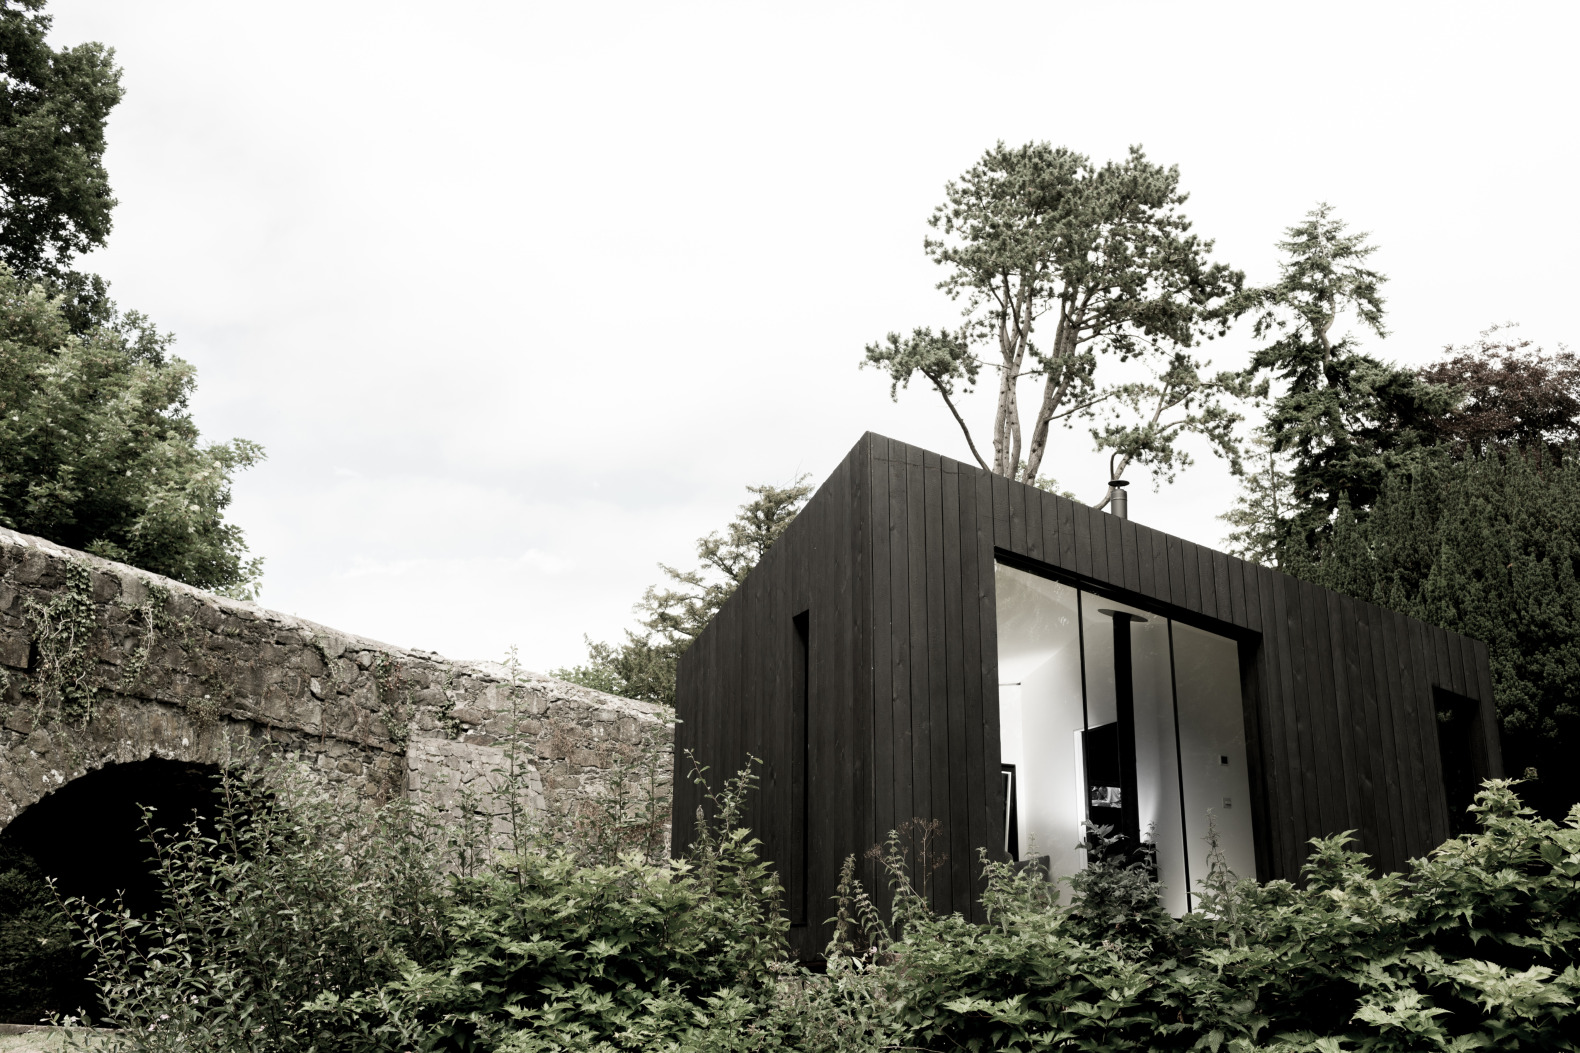 Low Energy Prefab Tiny Cabins Are Inspired By